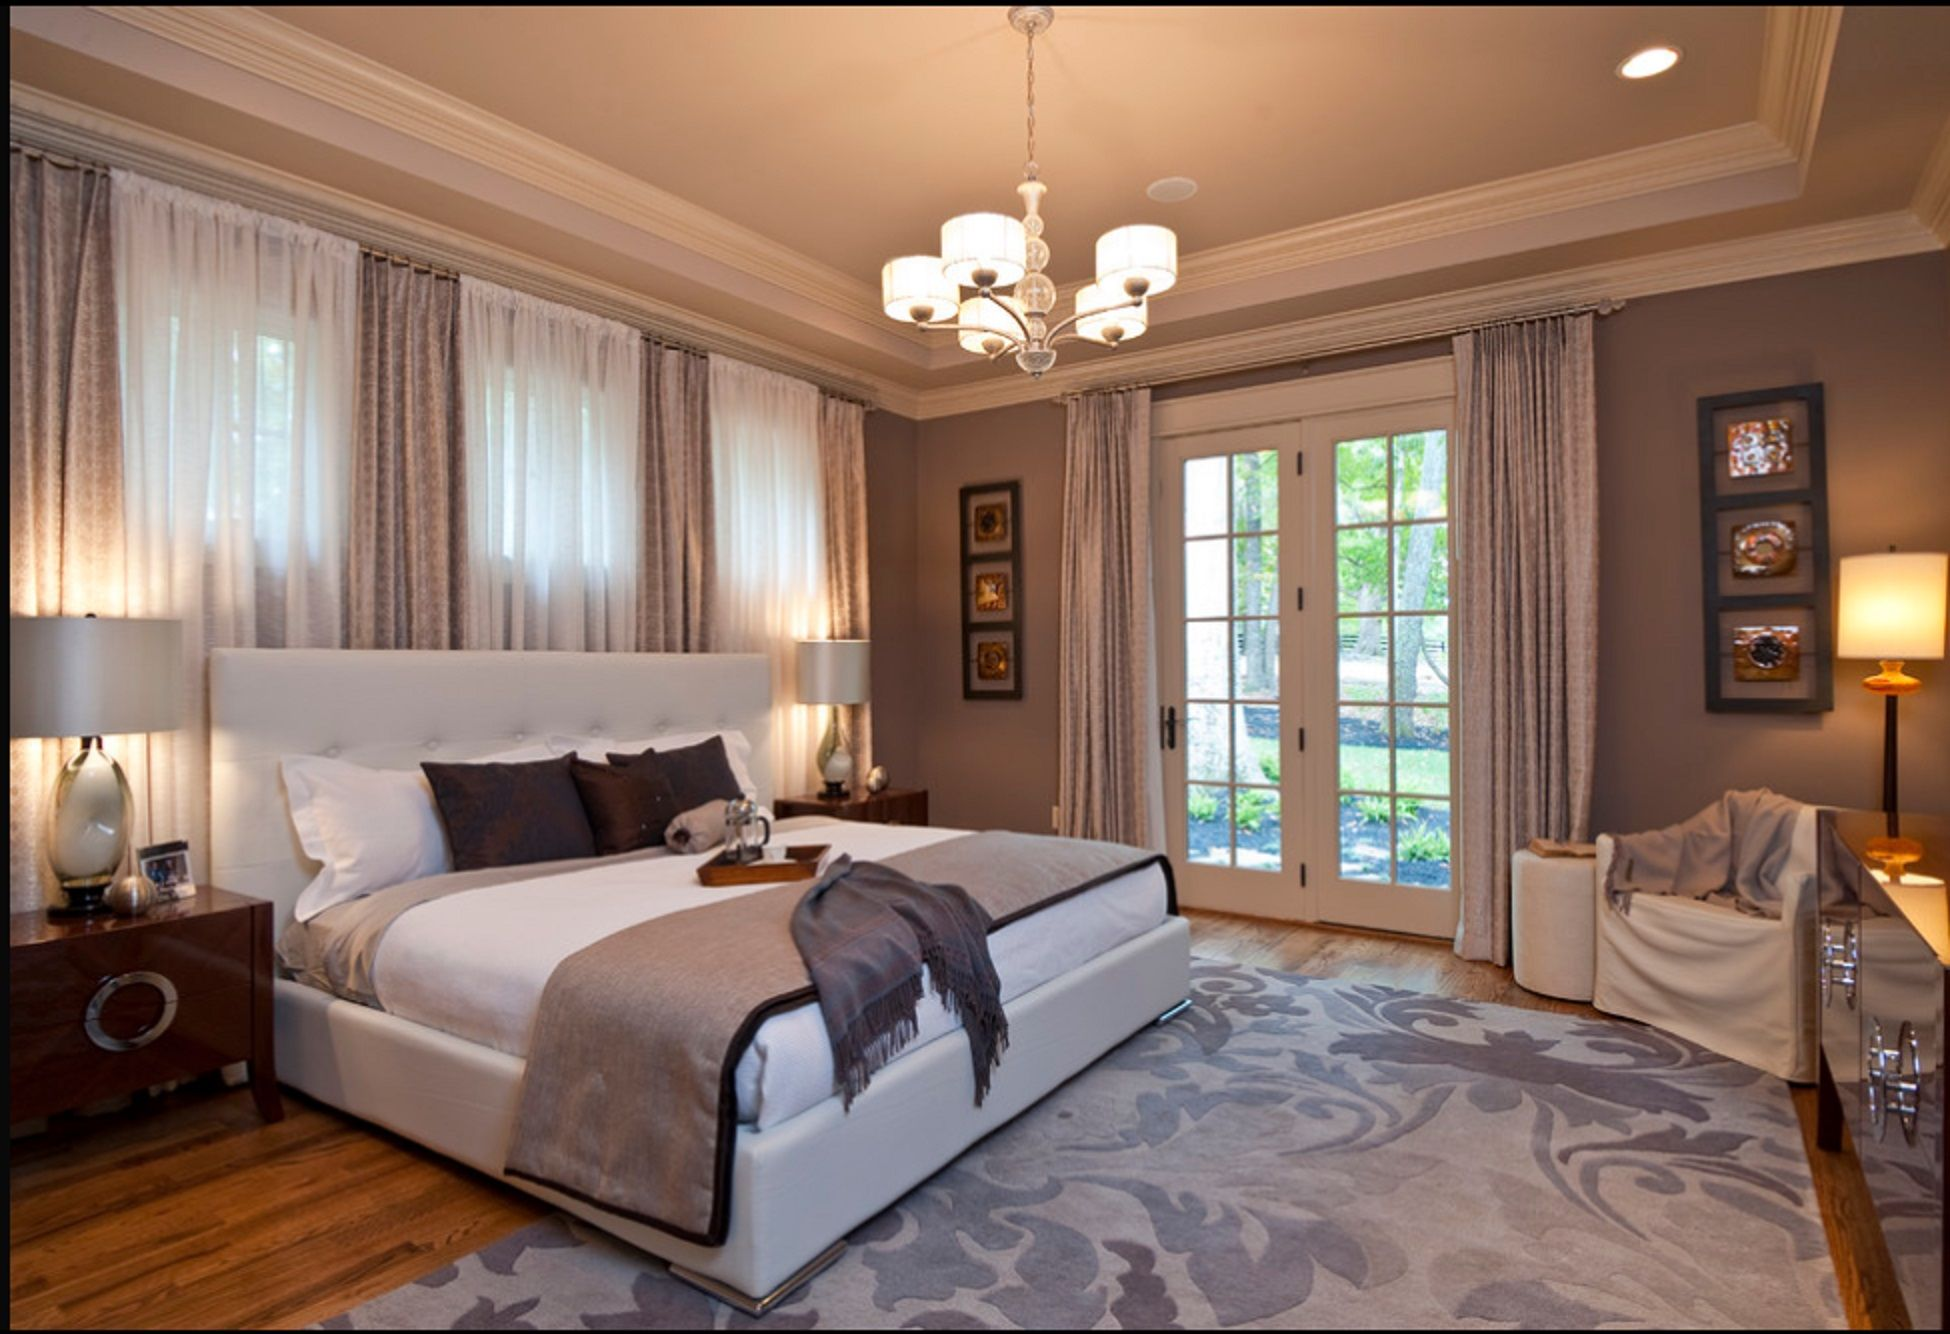 Pin By Shala Tune On Bedrooms Luxury Bedroom Master Elegant Master Bedroom Master Bedrooms Decor